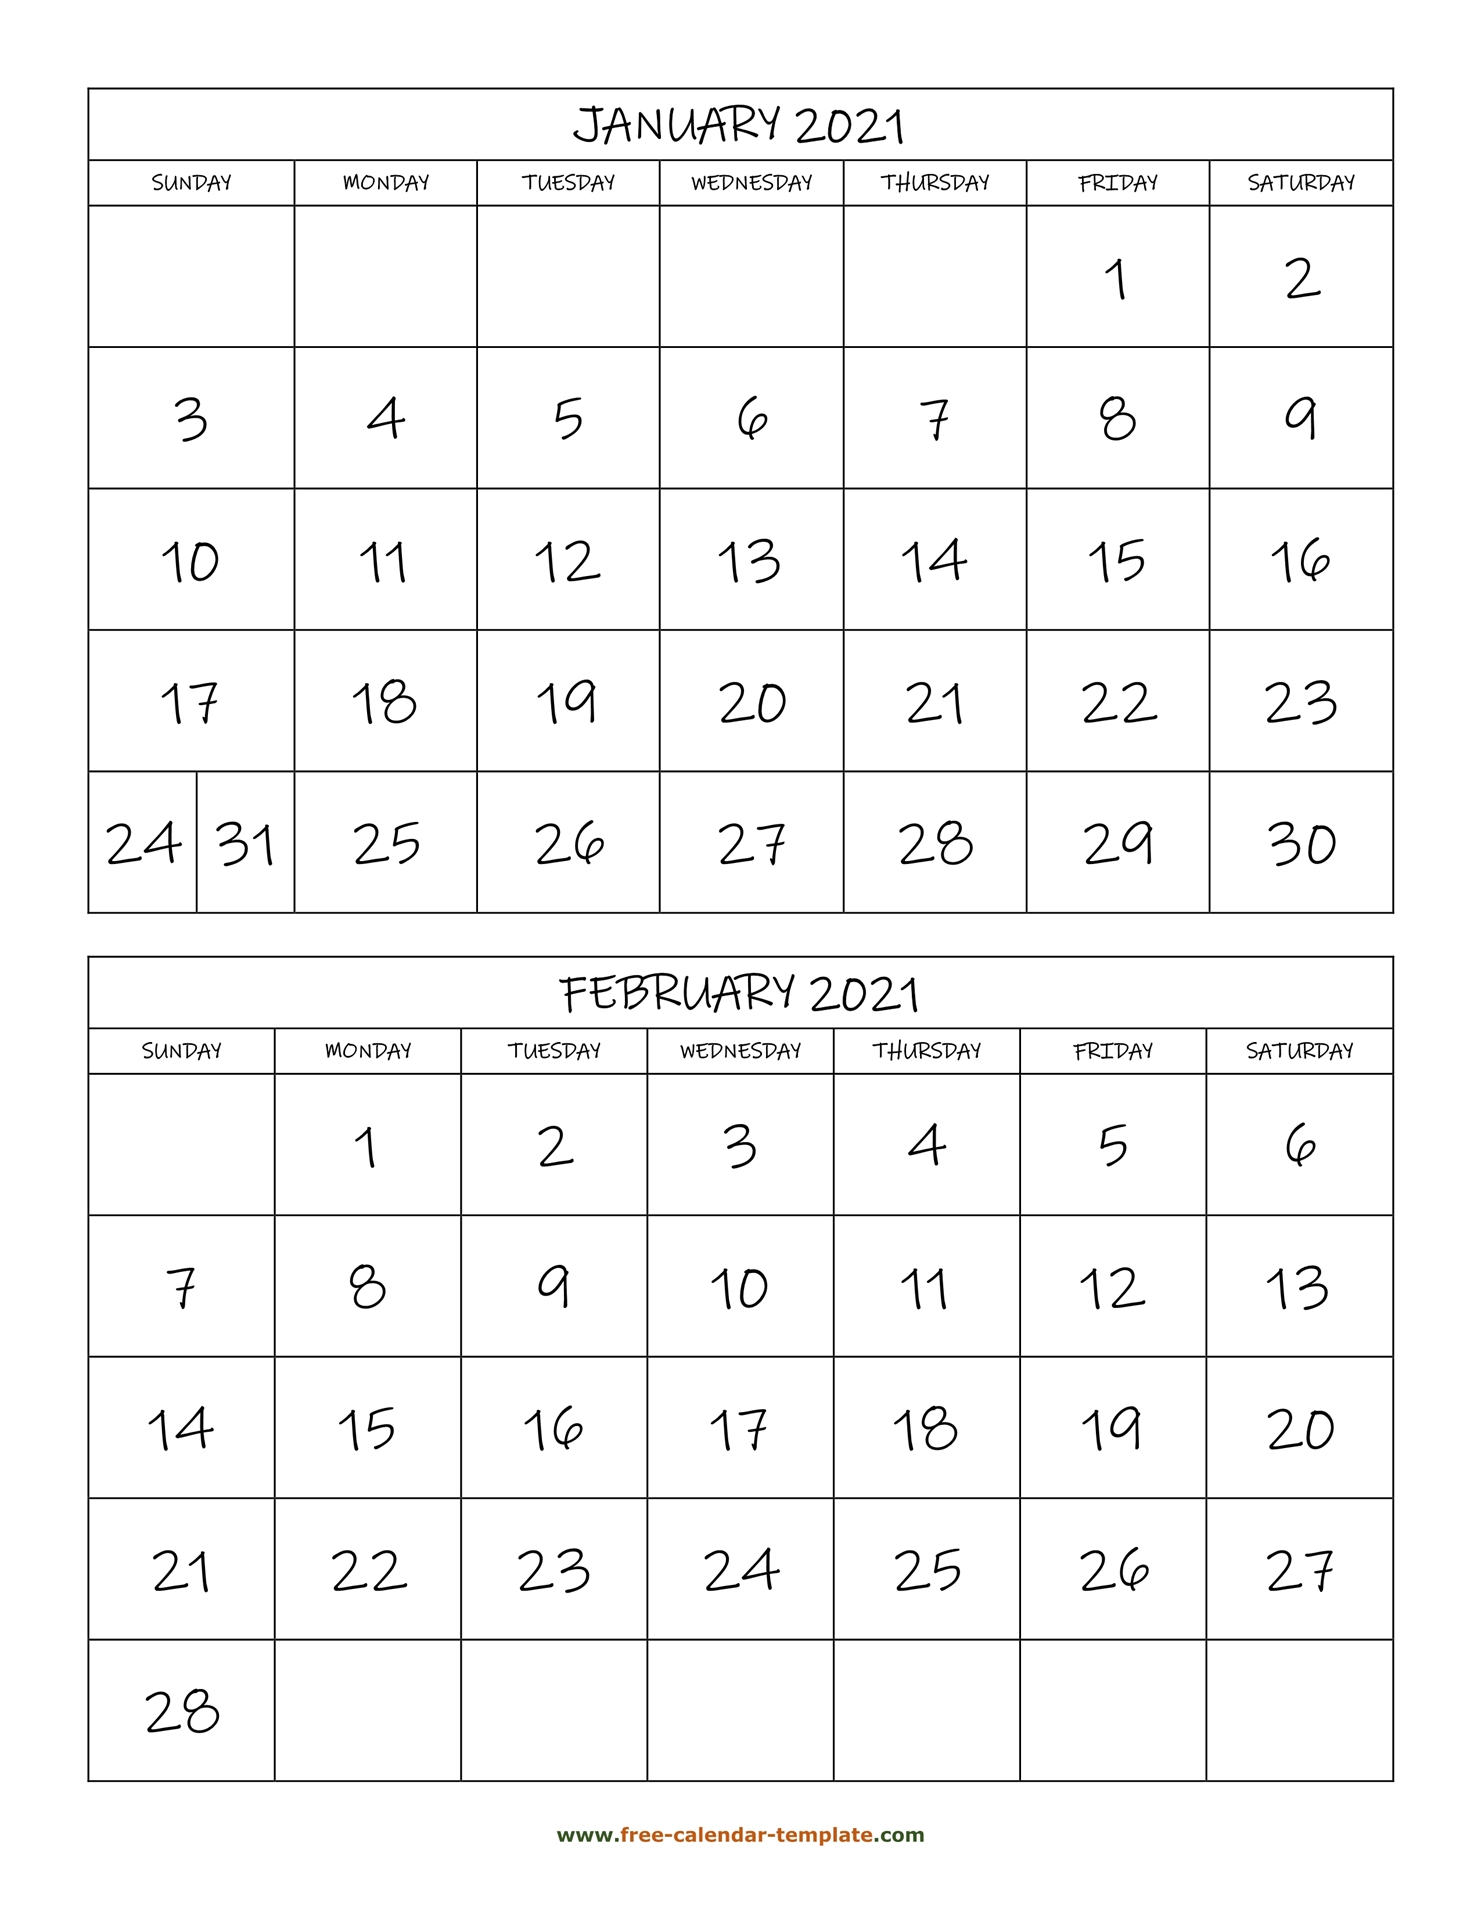 Monthly Calendar 2021, 2 Months Per Page (Vertical) | Free